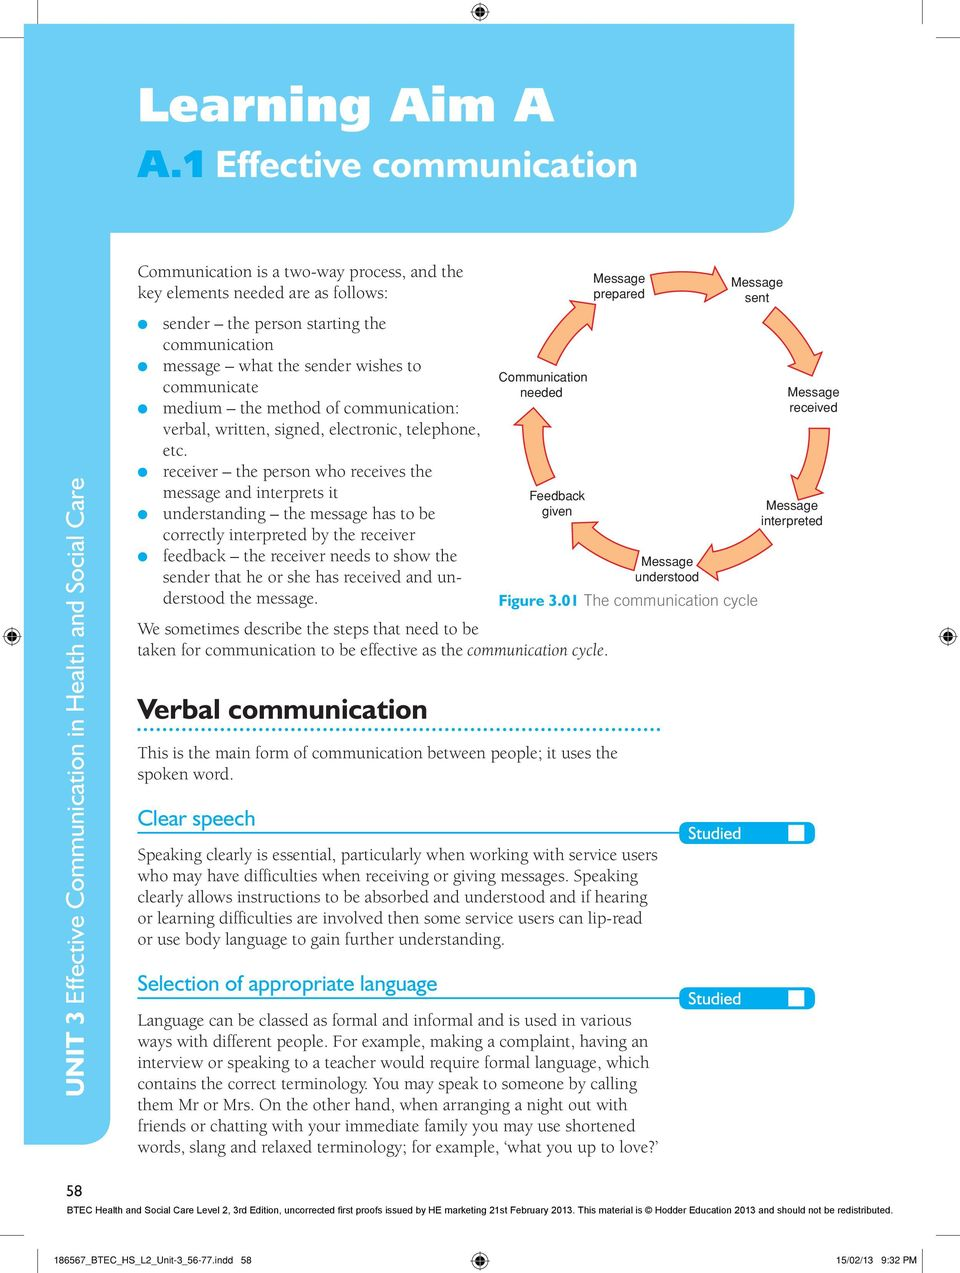 why is communication so important in health and social care